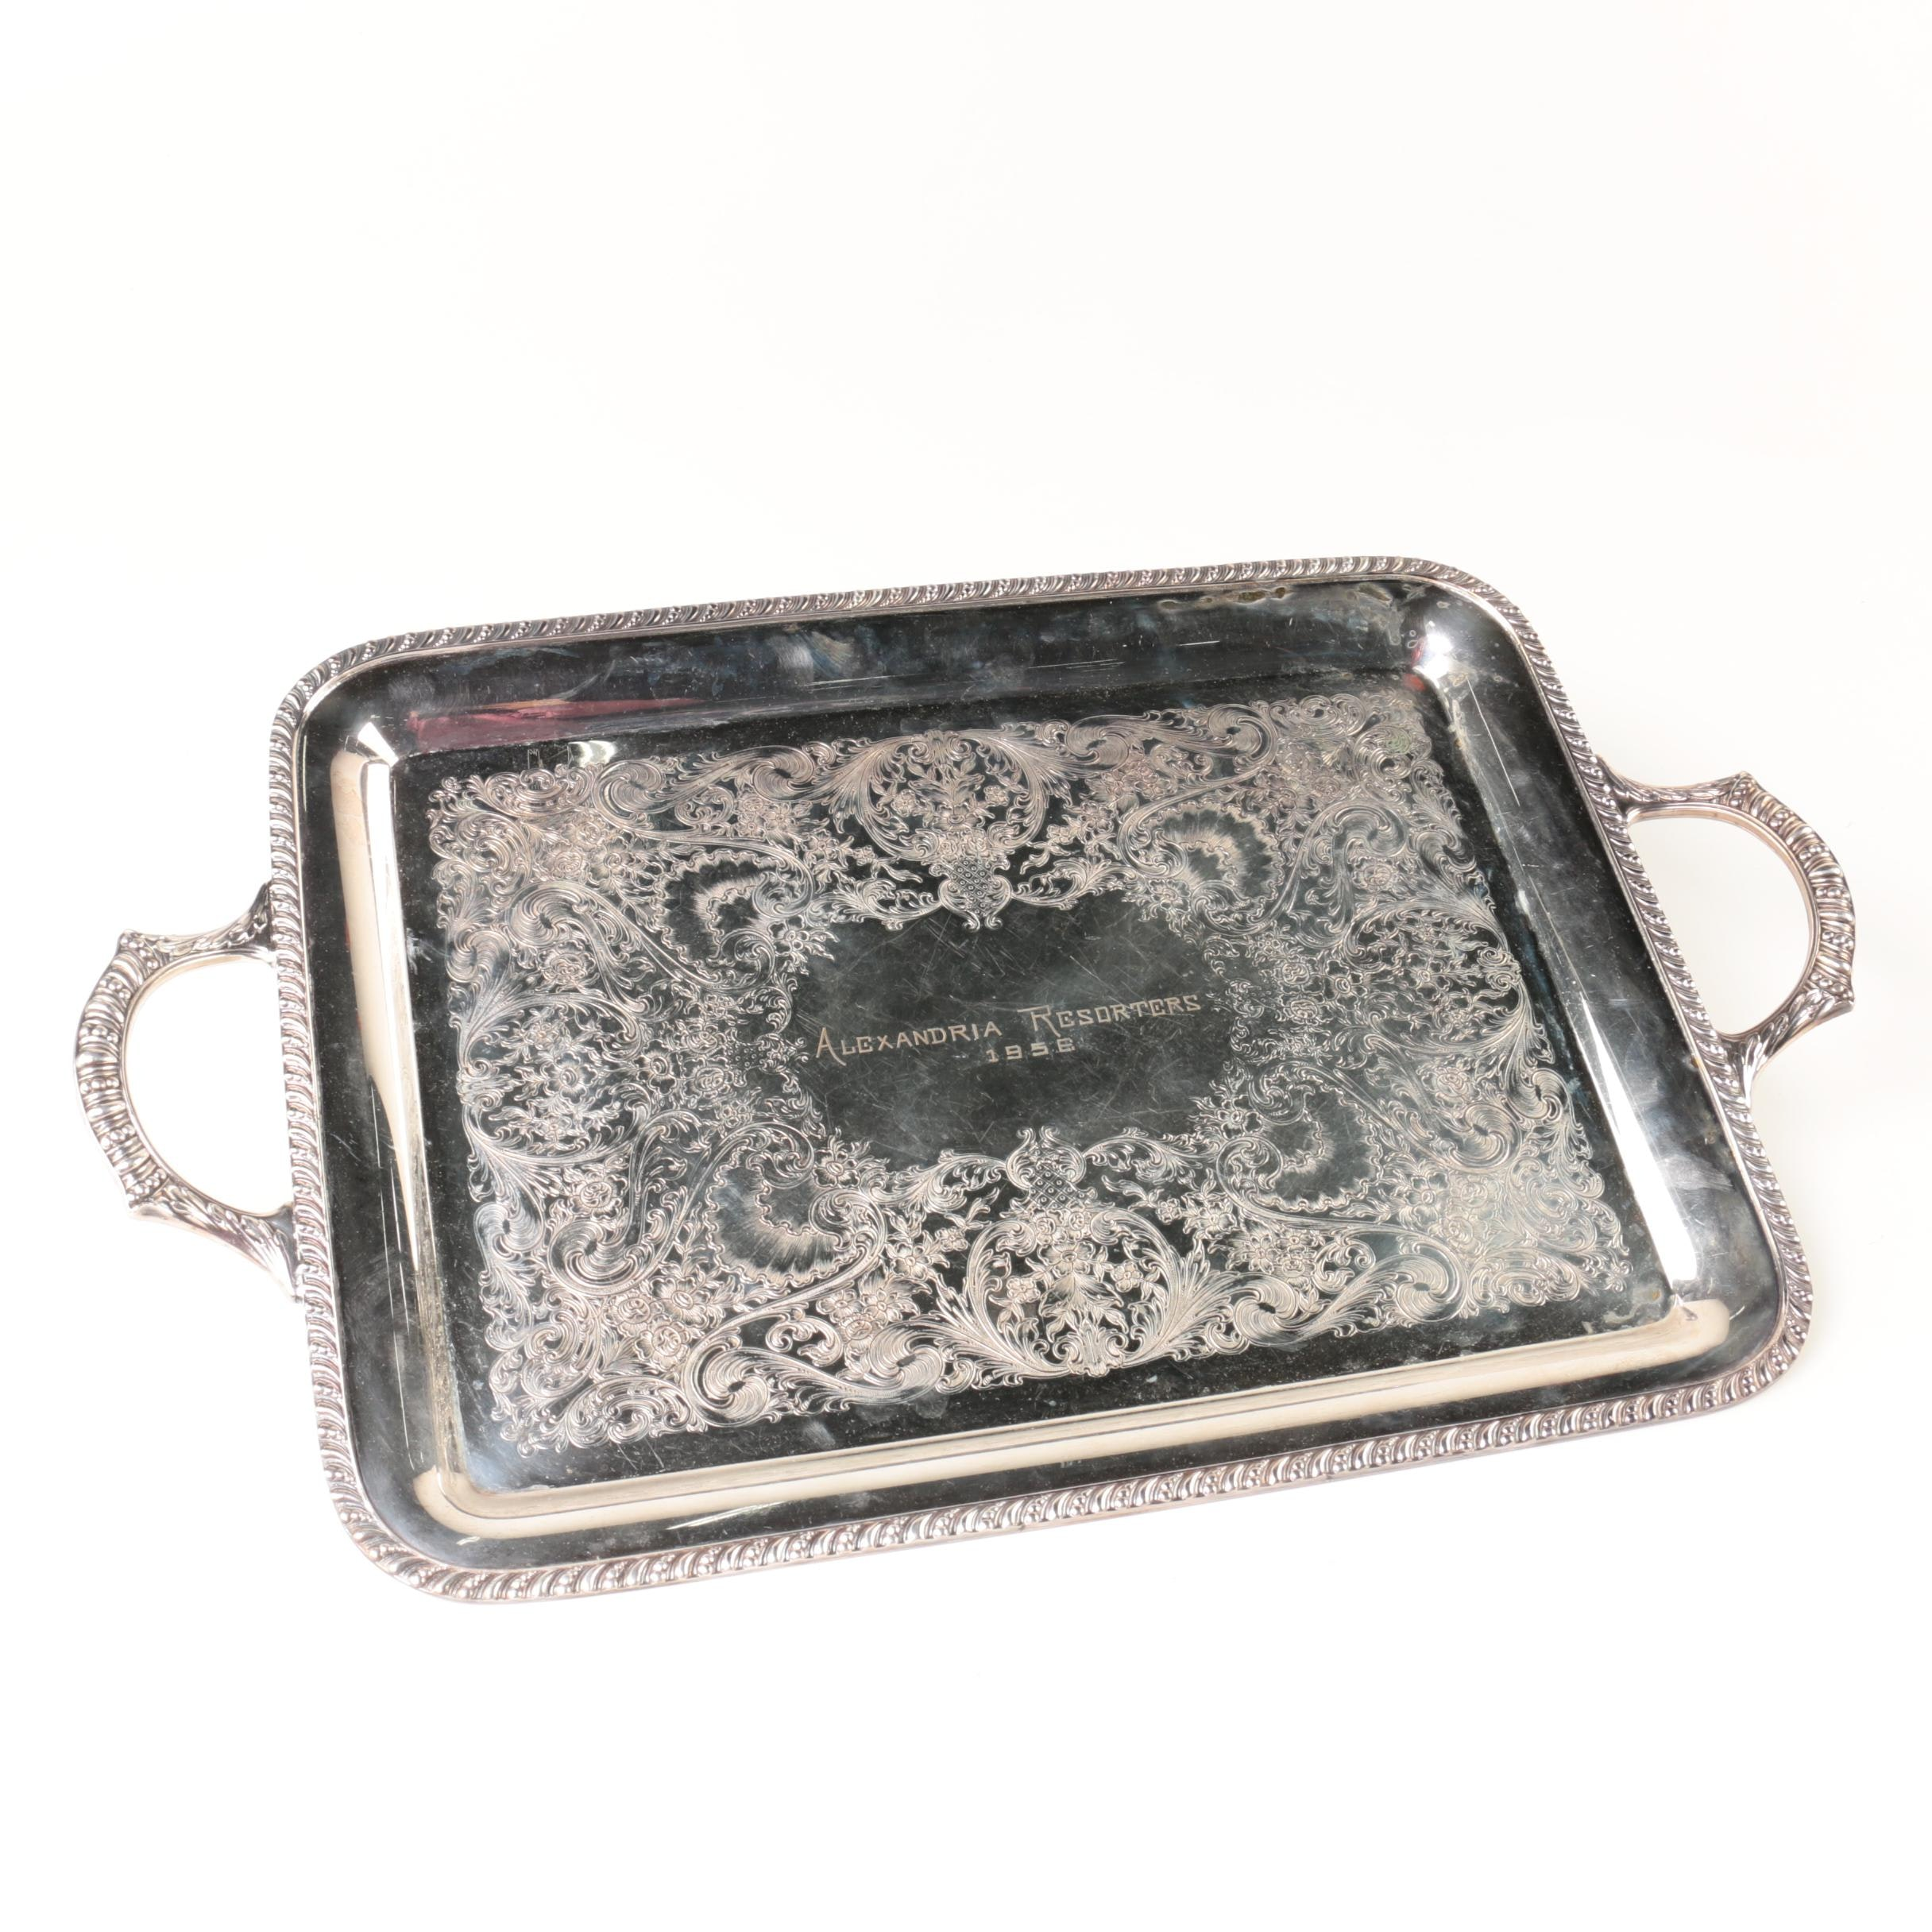 Vintage Silver Plate Inscribed Serving Tray